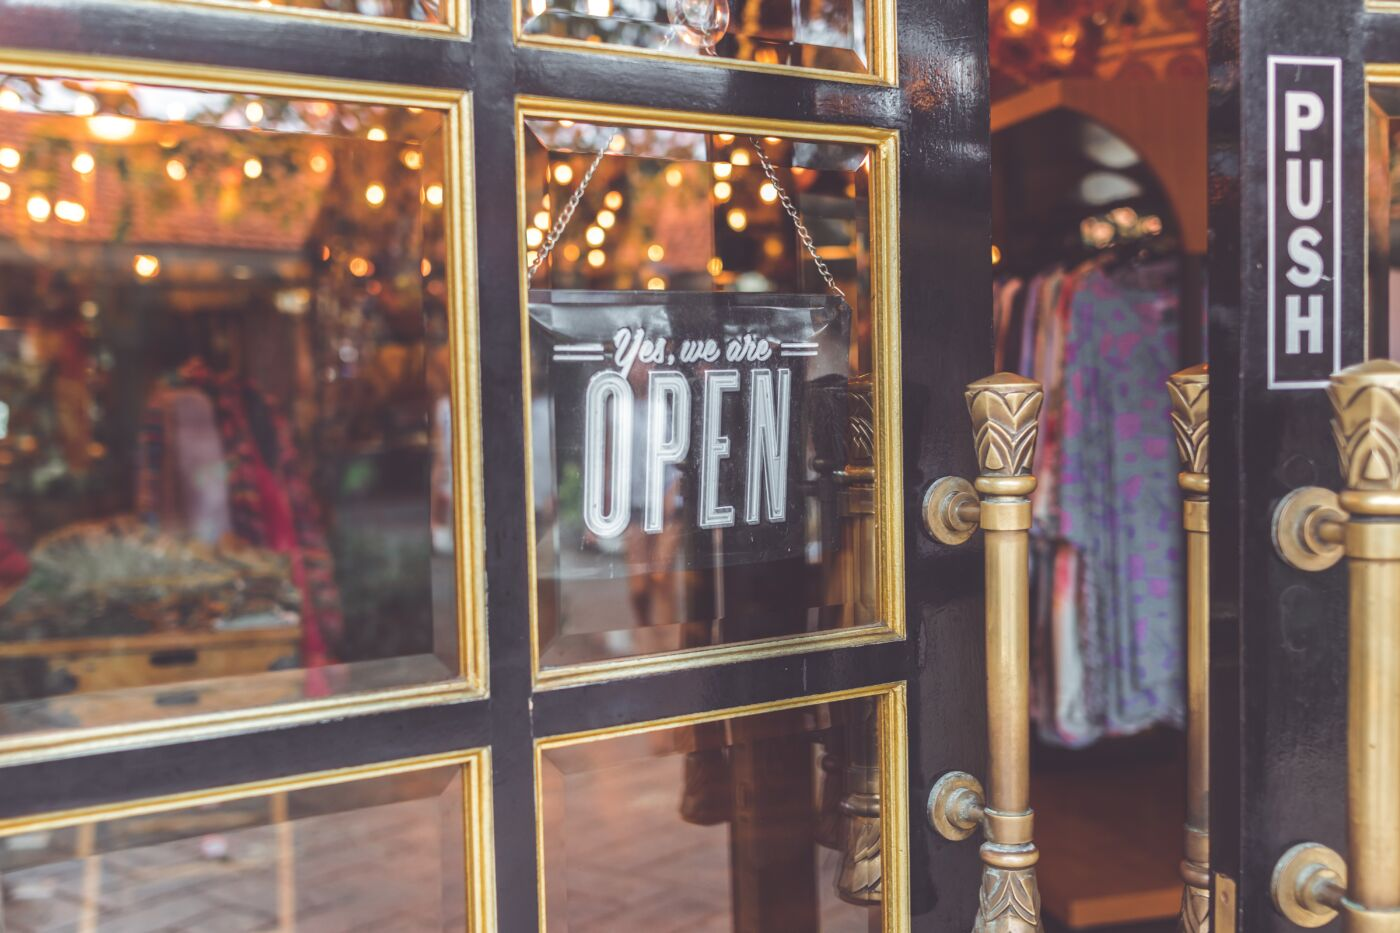 easy ways to support small businesses